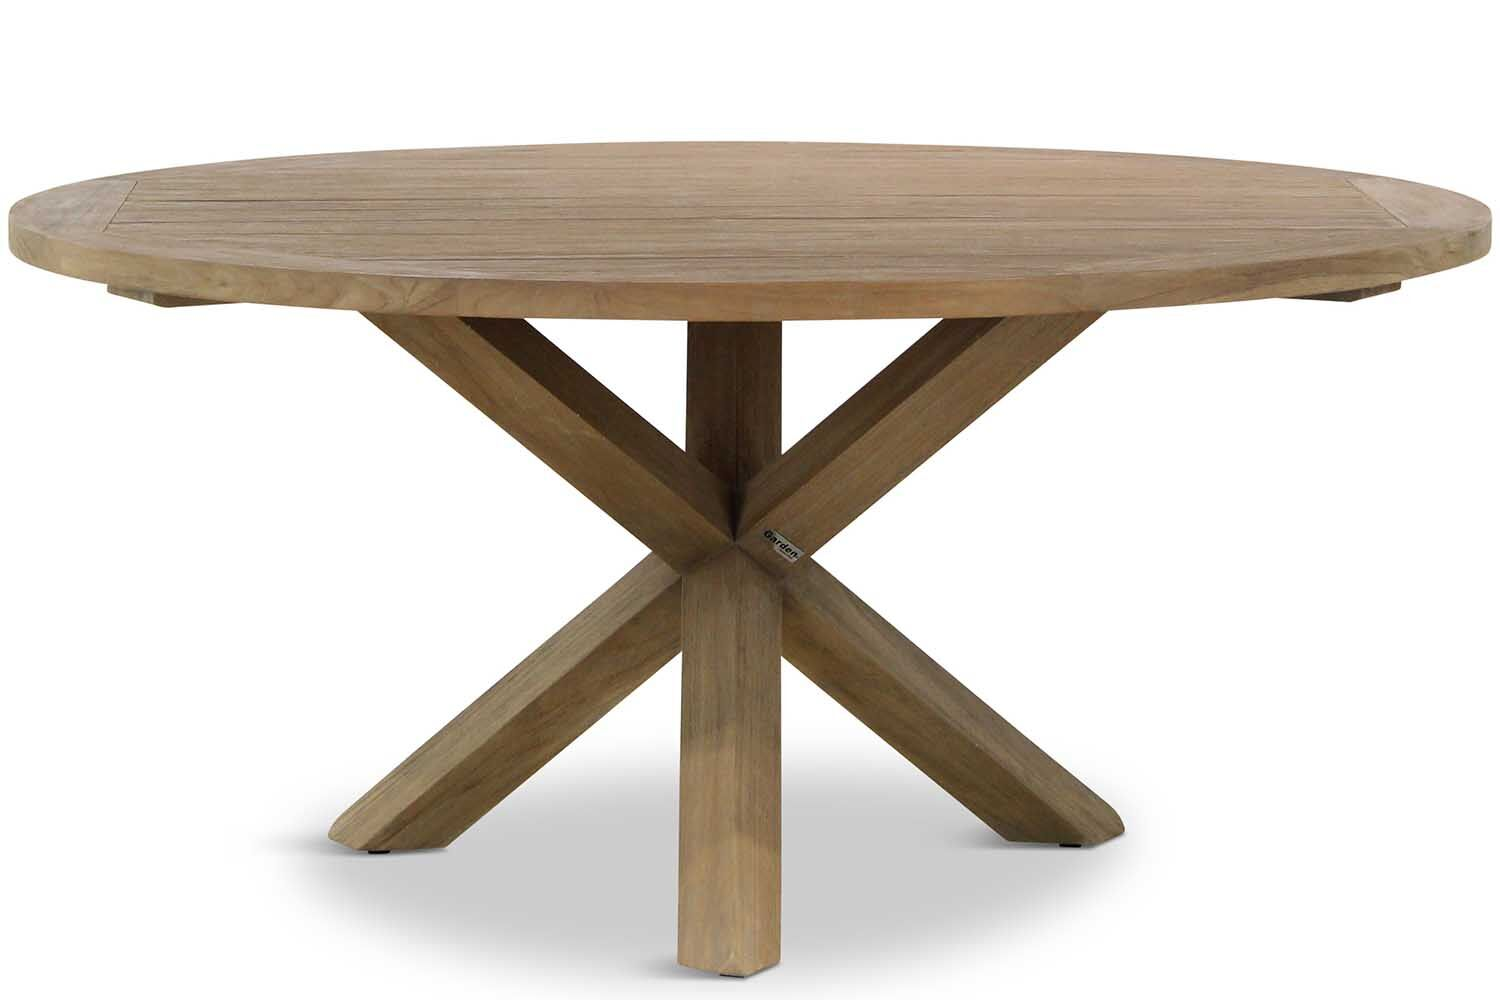 Garden Collections Sand City rond dining tuintafel 160 cm